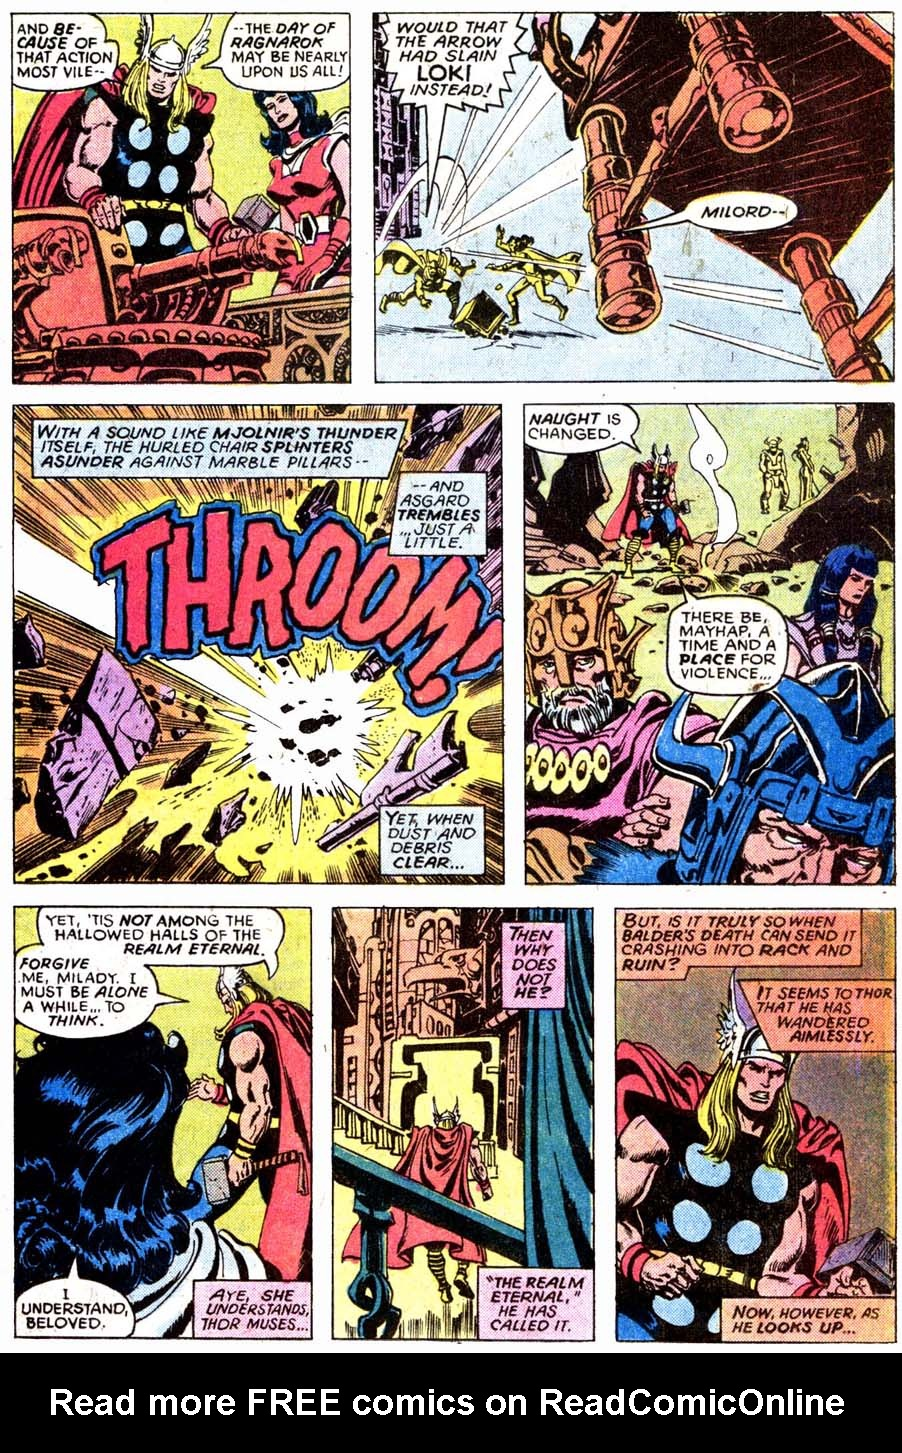 7 Muses Comics comic thor (1966) issue 7